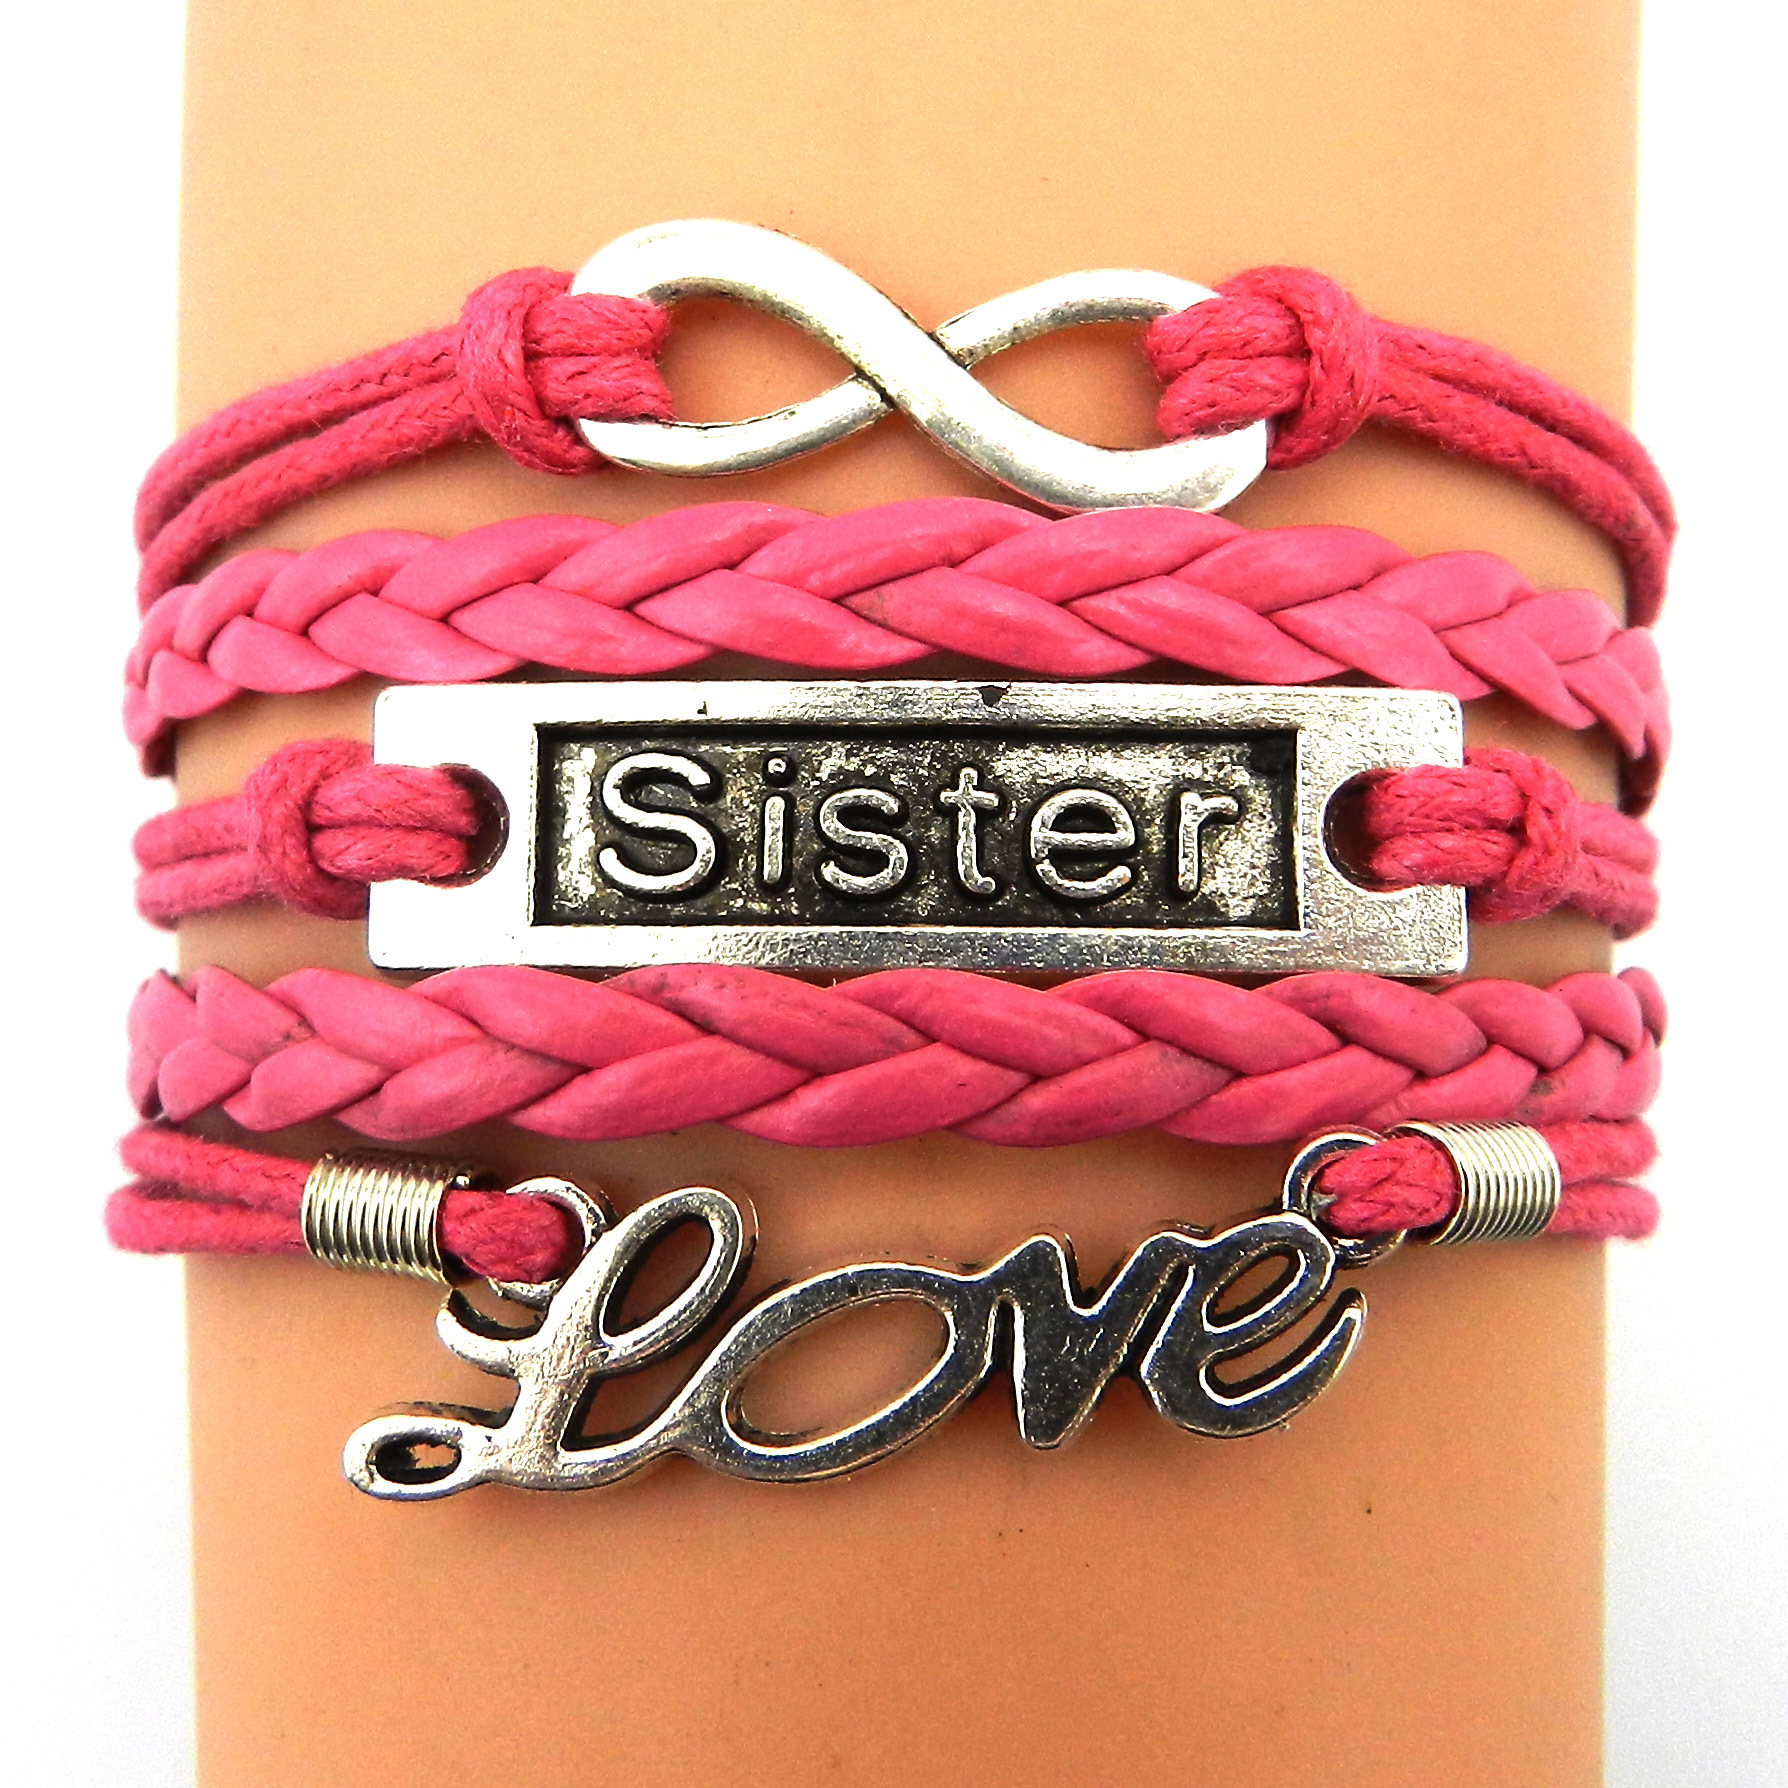 Fashion Diy Love Jewelry Handmade Colorful Bracelets Braided Rope Cuff  Wristband Wrap Bangle Sister